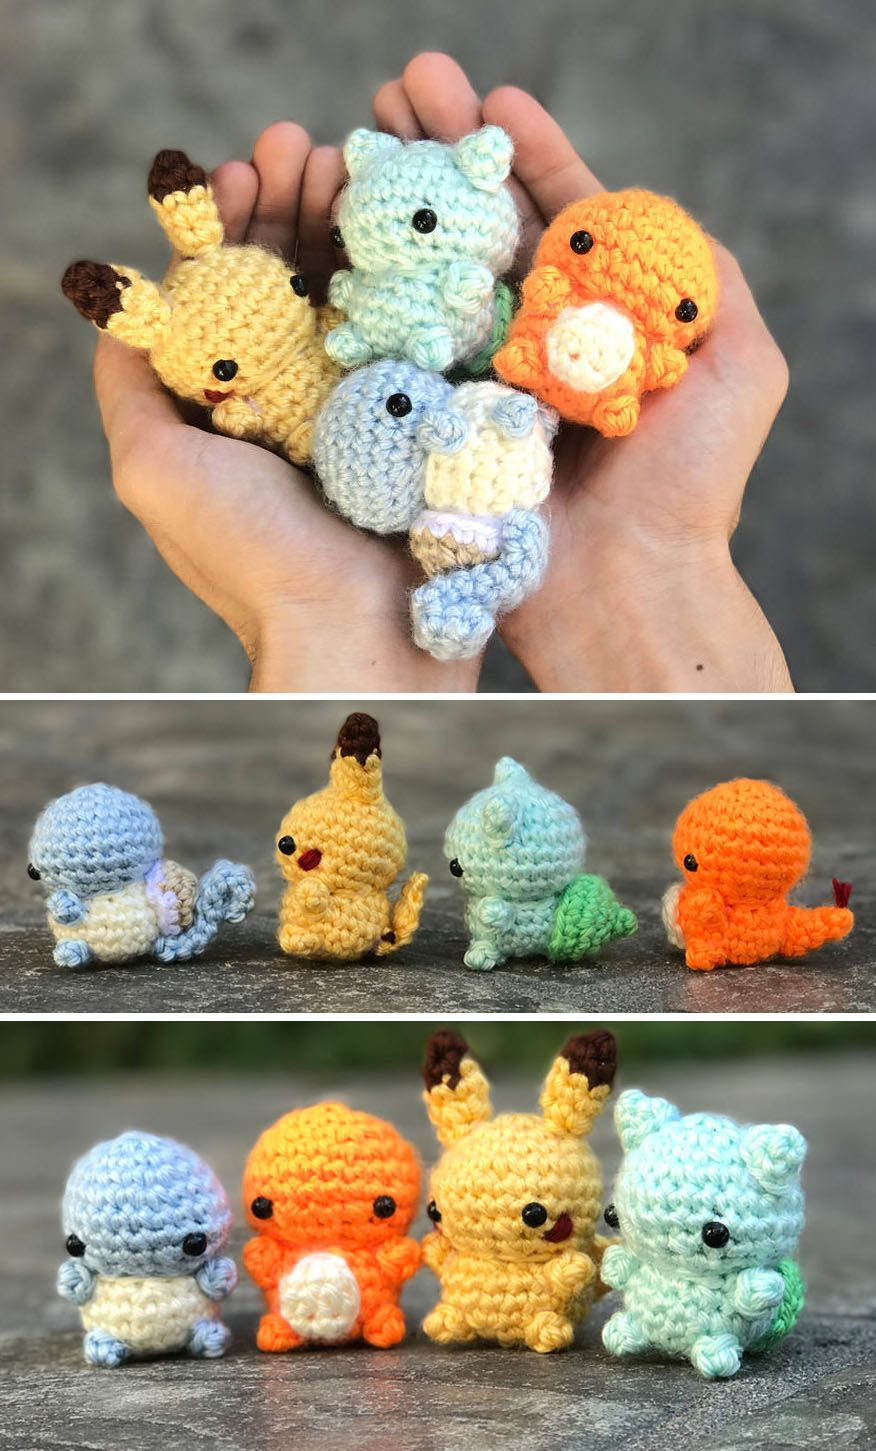 Tiny Pokemon Original Starter Beanies | häkeln/stricken xxx ...